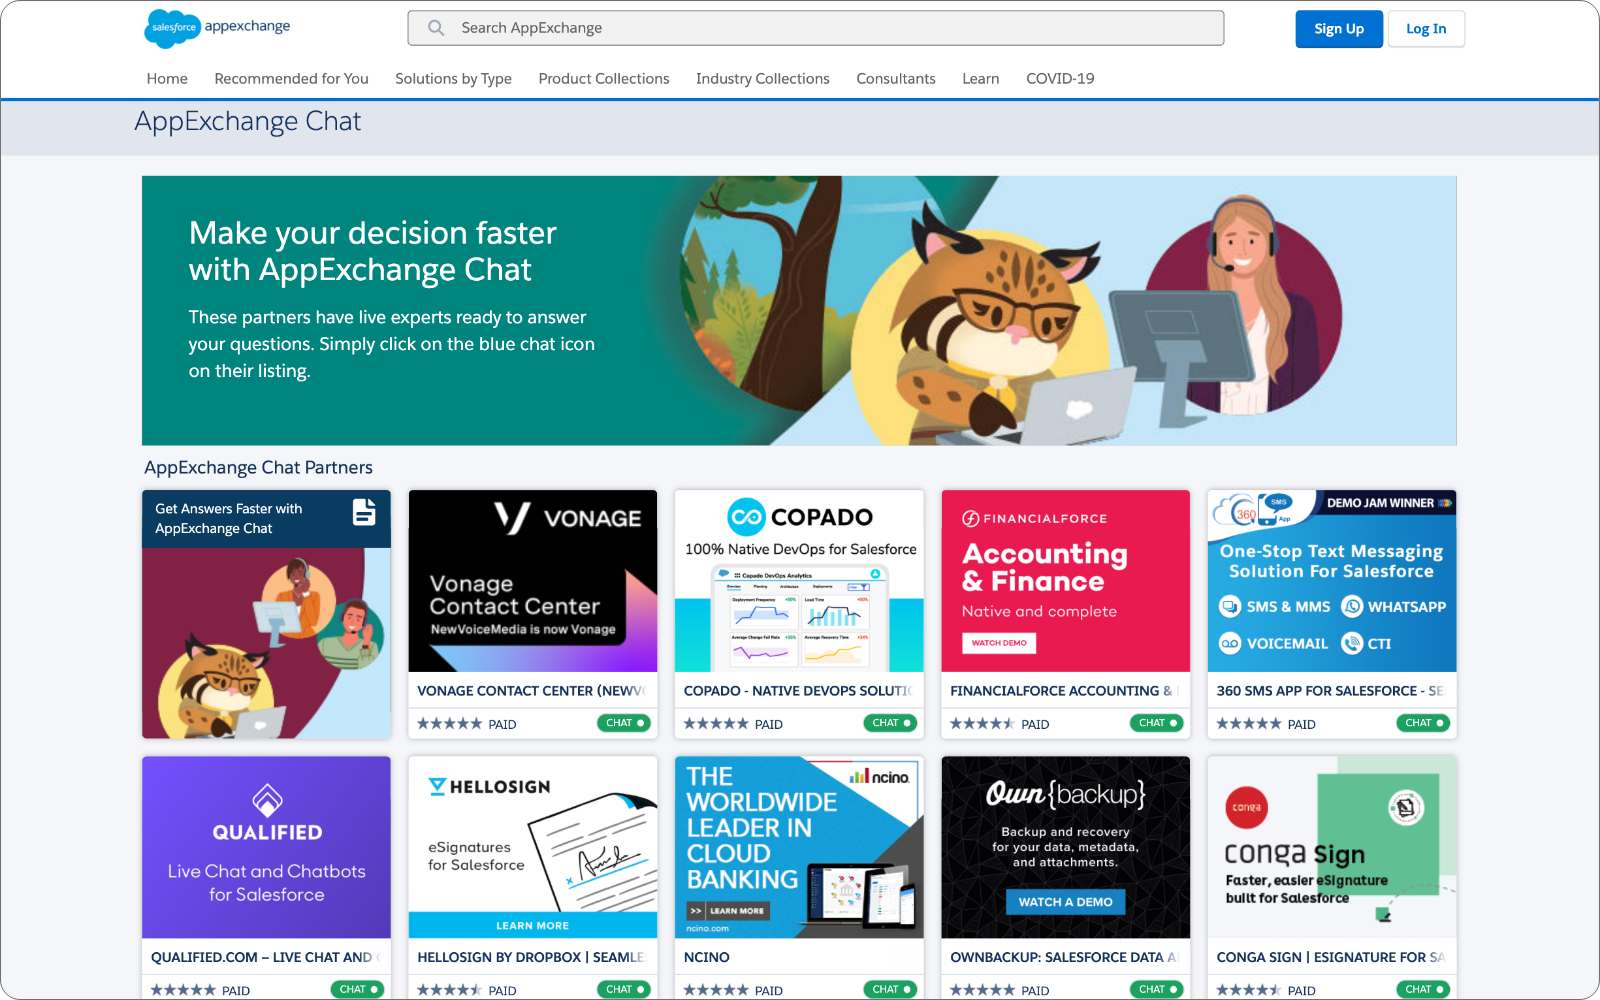 A Collection of Salesforce AppExchange partners now live with AppExchange Chat powered by Qualified.com